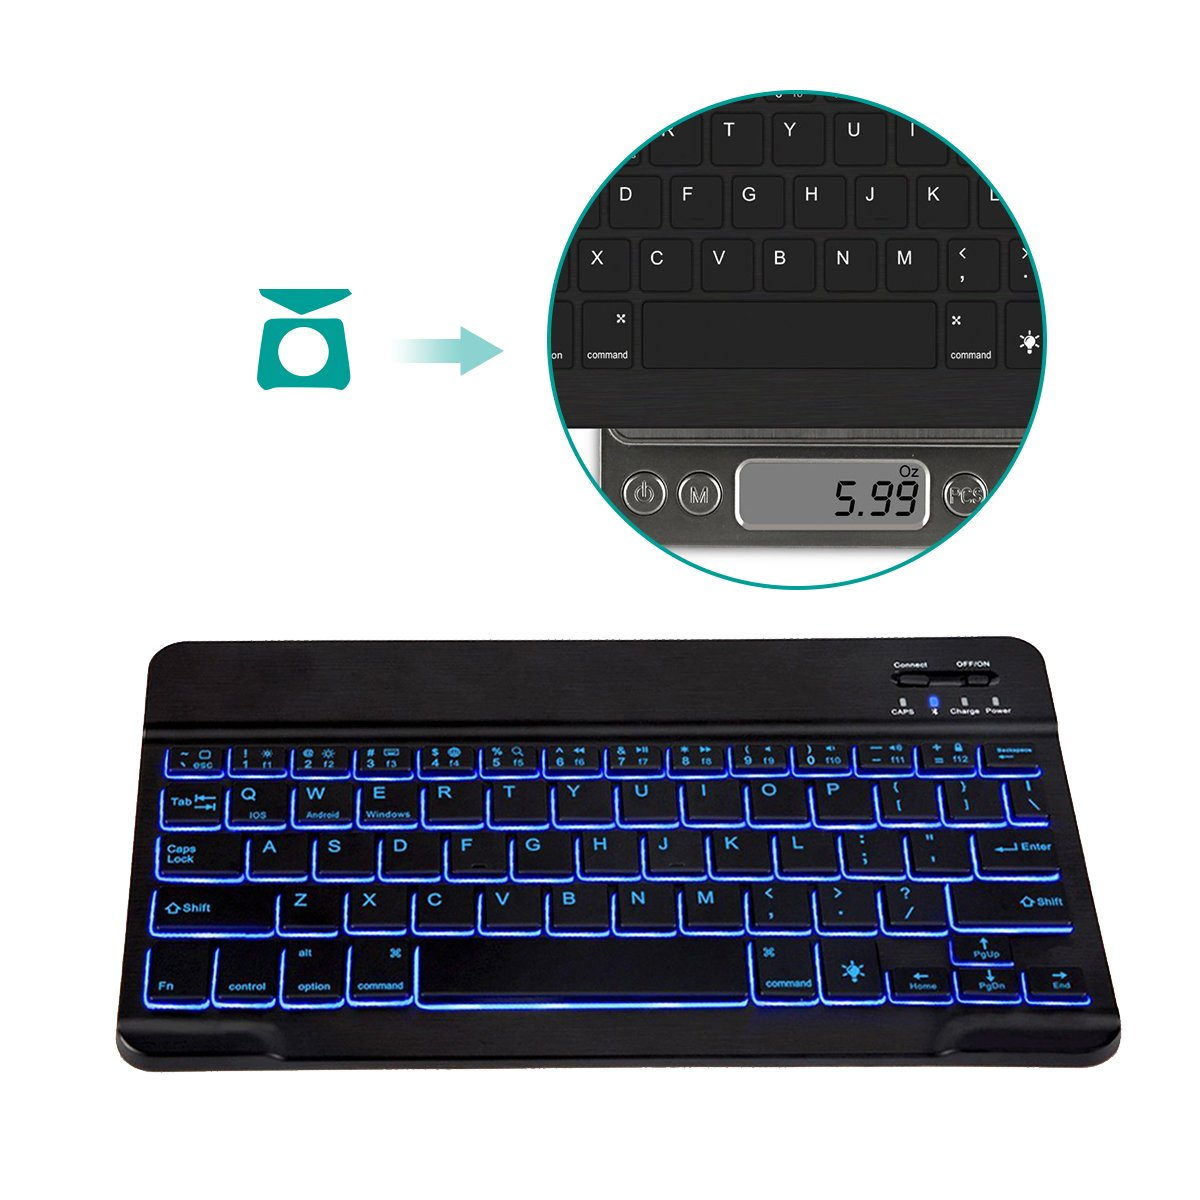 Universal Wireless Keyboard Backlit 7-Color Ultra Slim Portable Zinc Alloy Wireless Bluetooth 3.0 Keyboard for iOS iPad Pro, iPad Air, iPad Mini, Android, MacOS, Windows Tablets PC Smartphone by Smart Tech (Image #8)